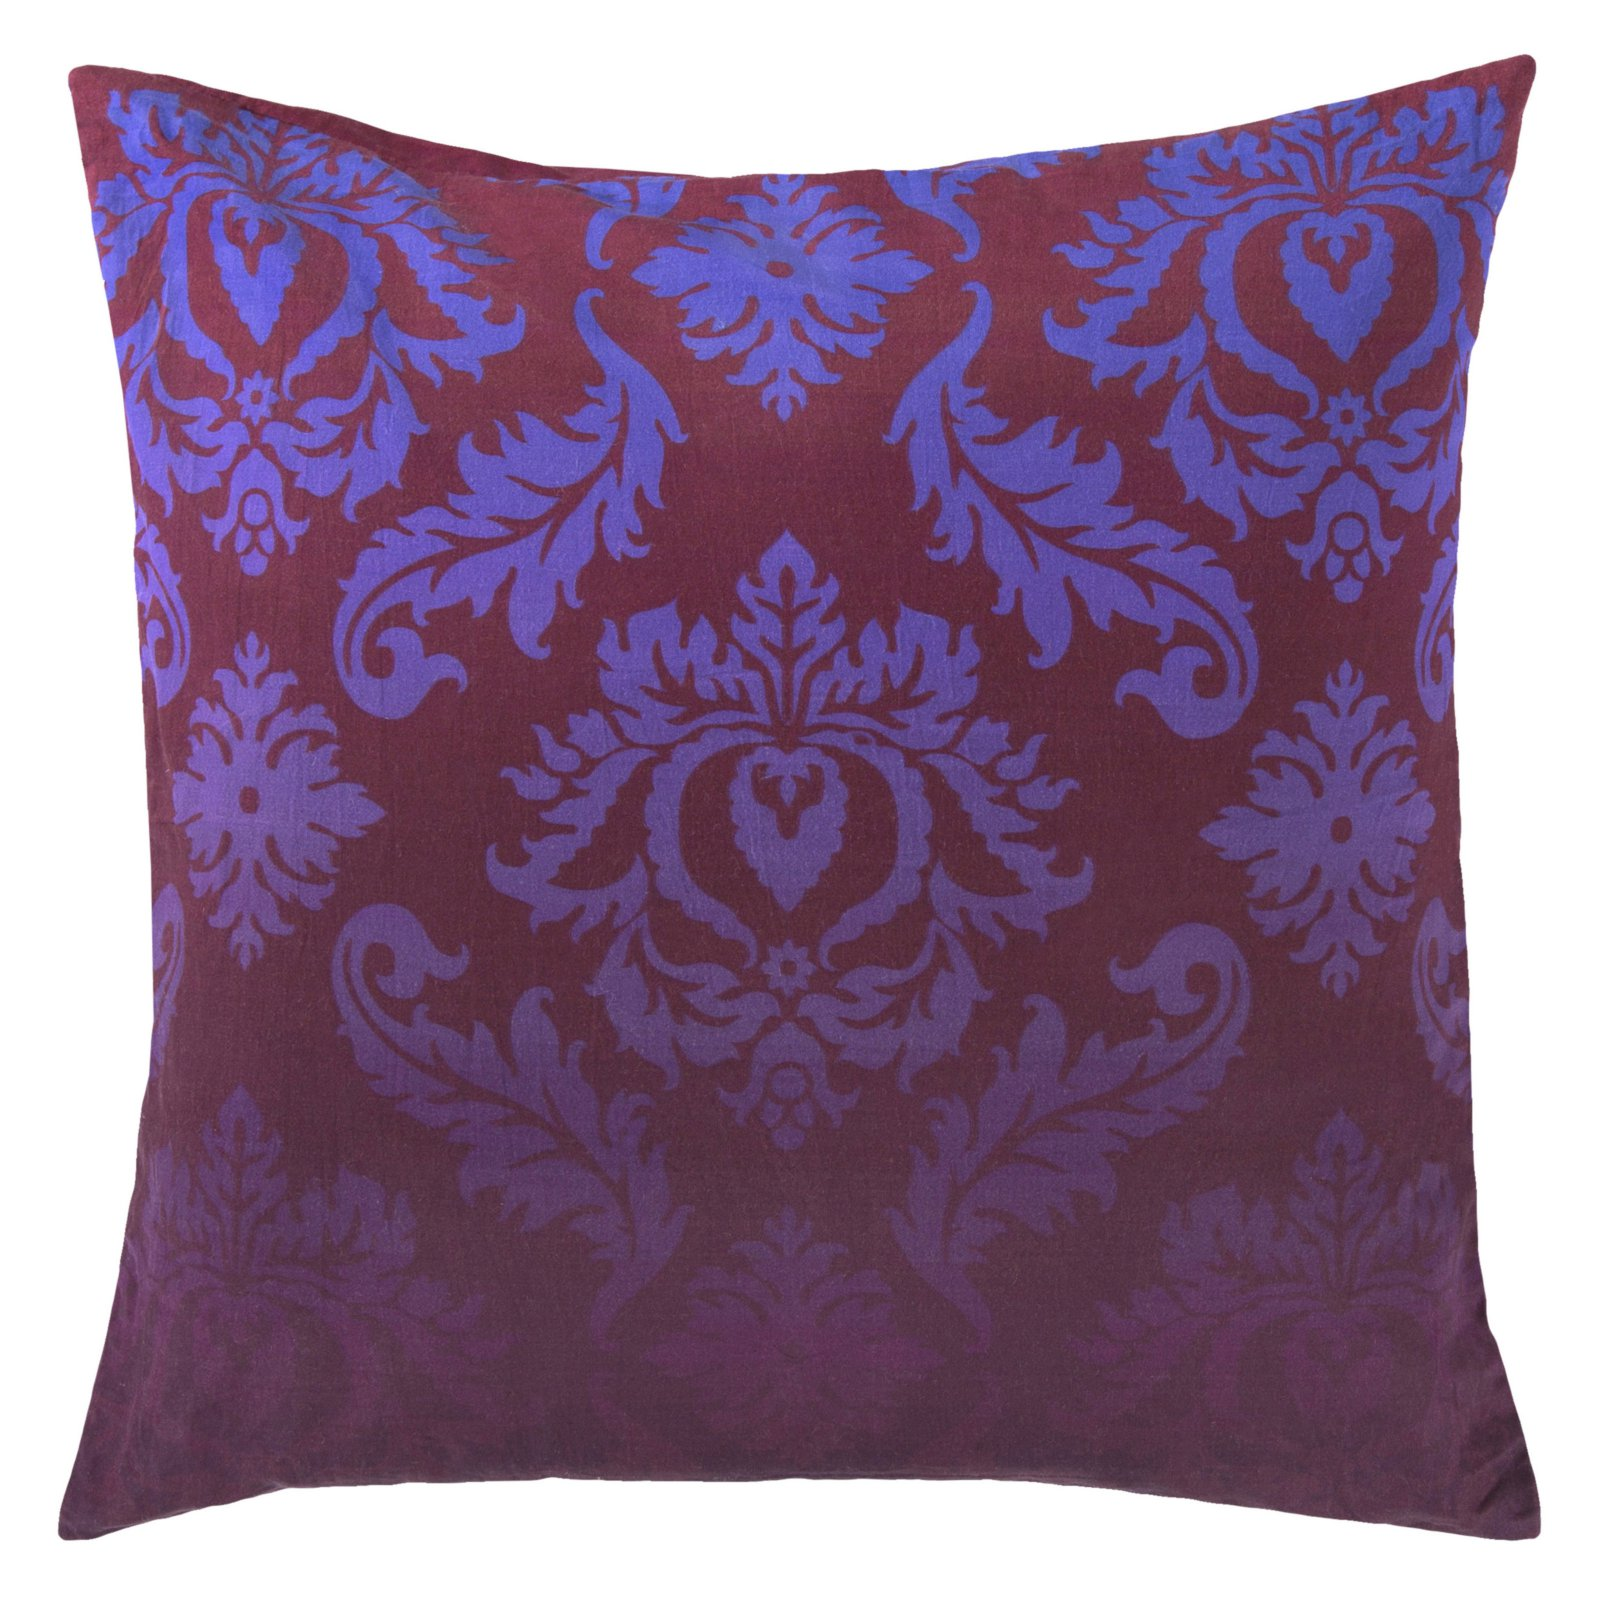 Surya Divine in Damask Decorative Pillow